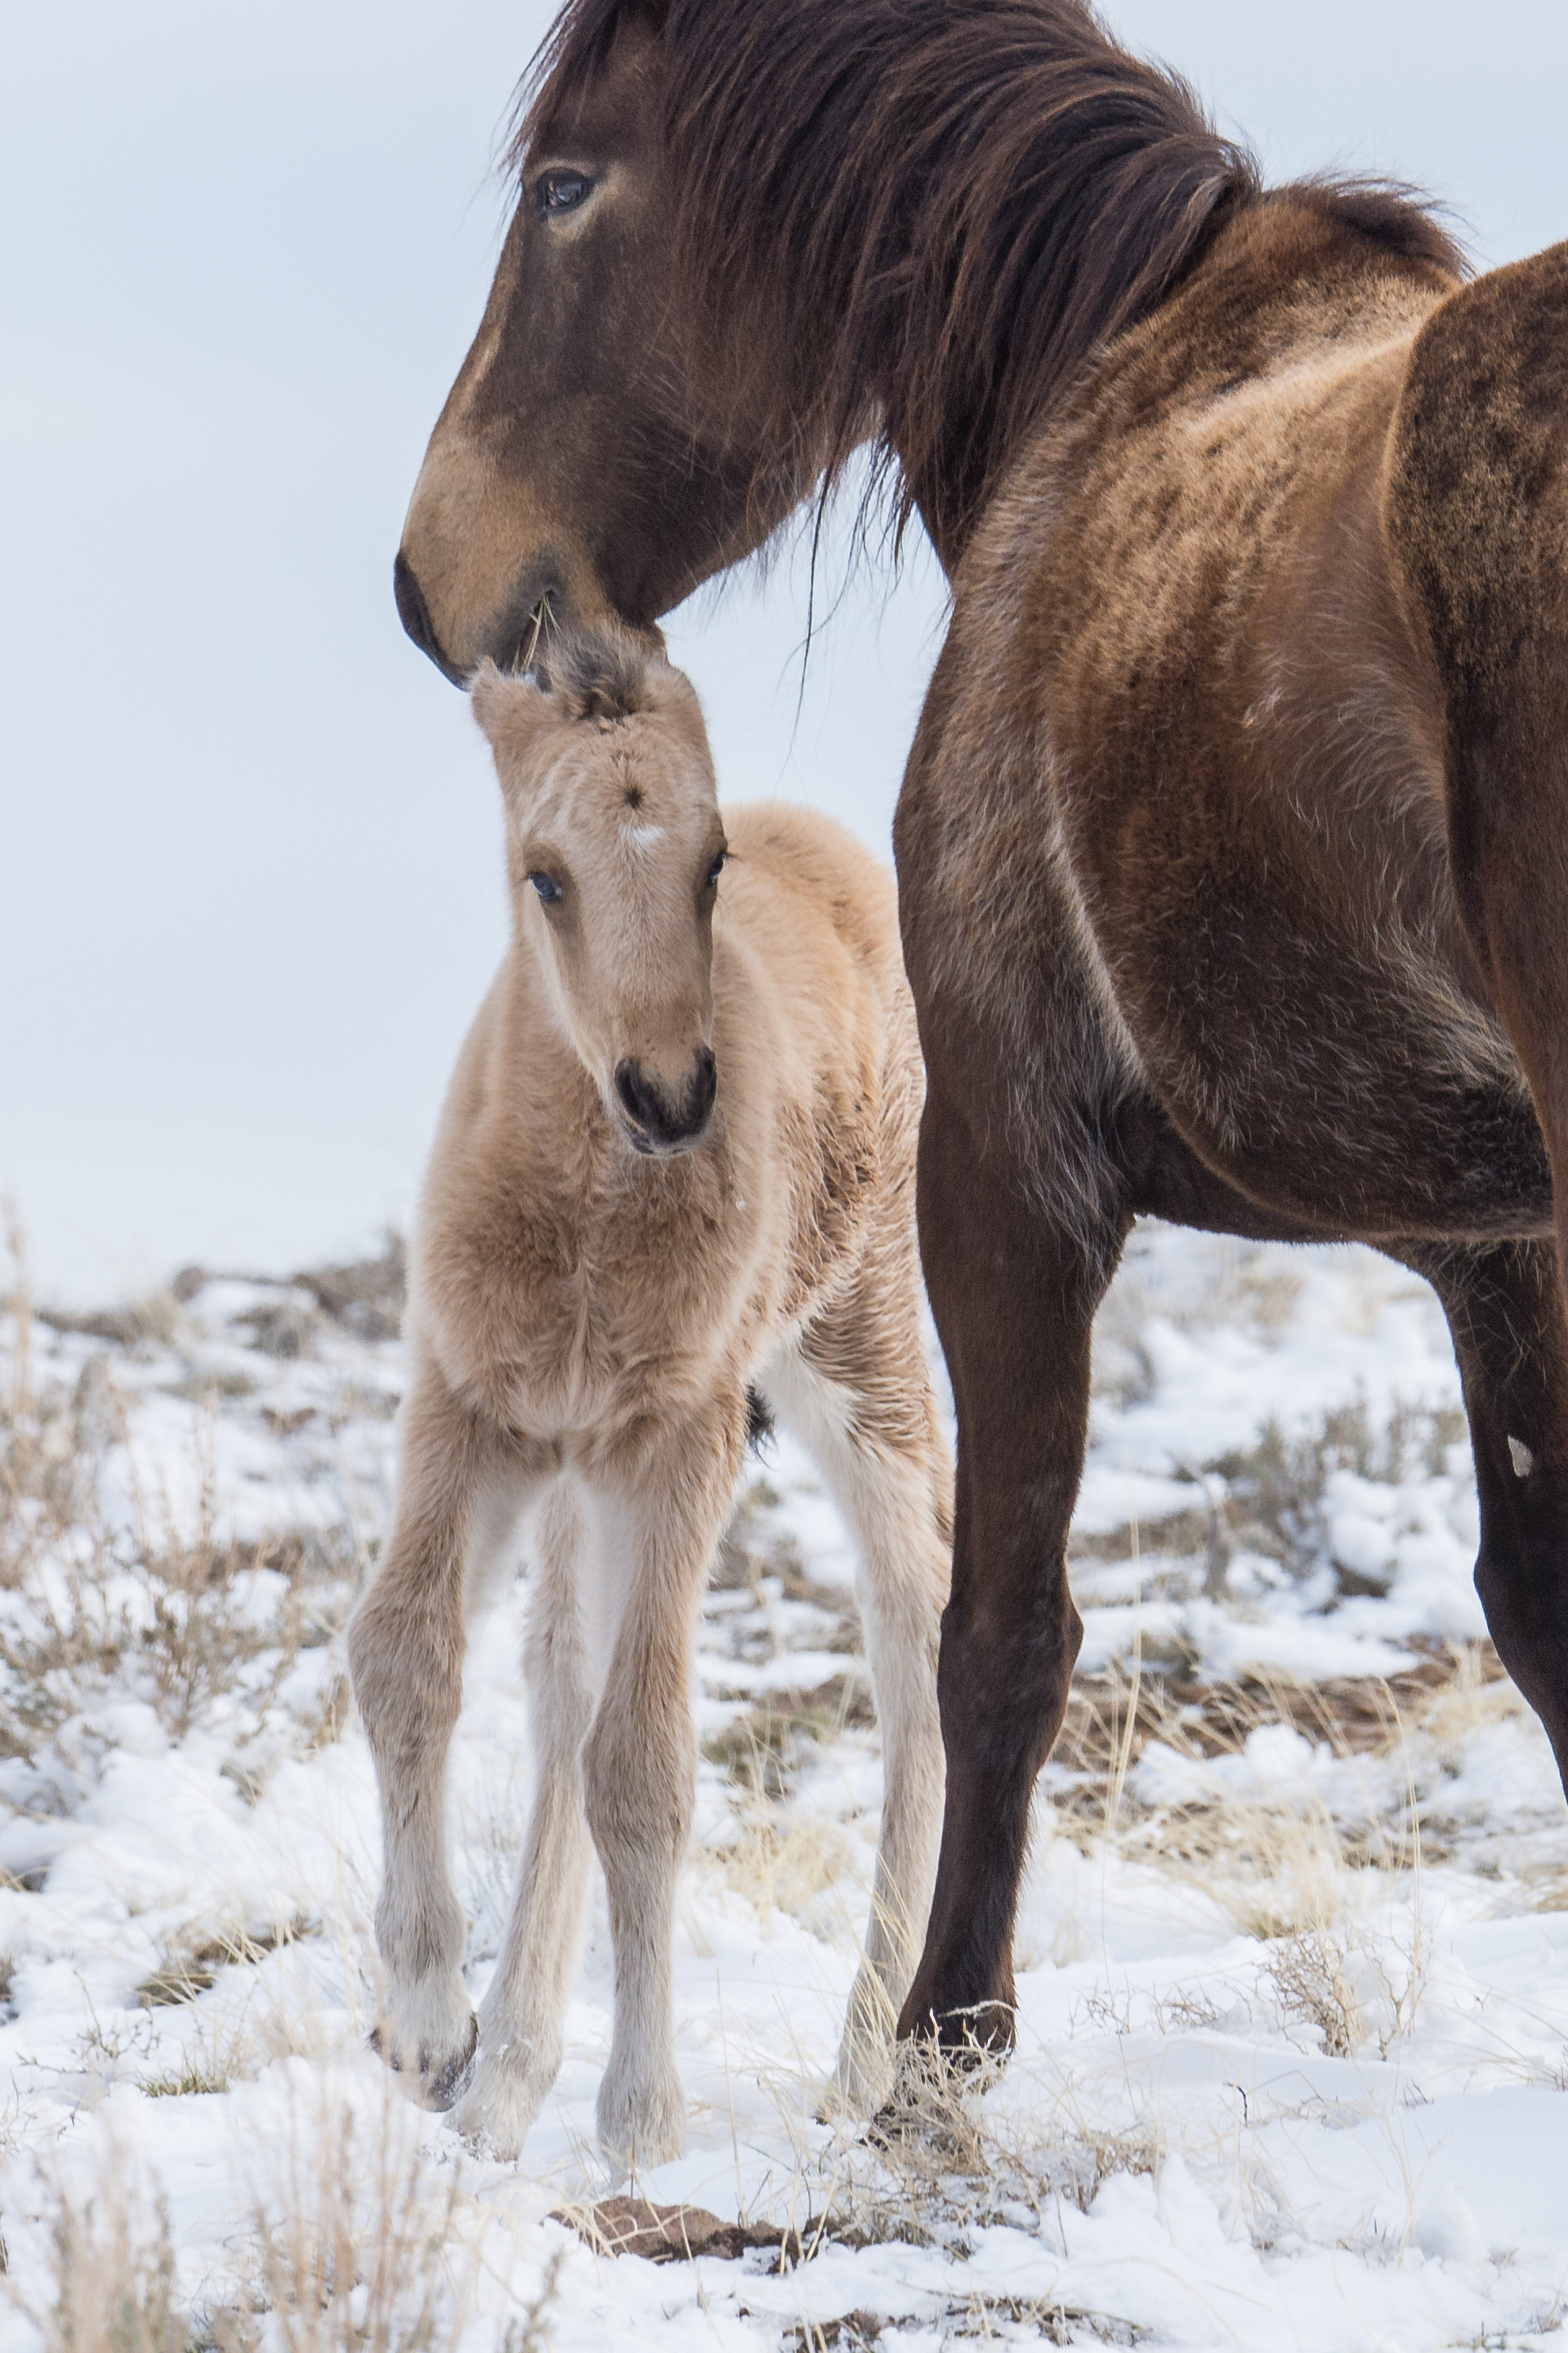 Mustang Colt with Mom